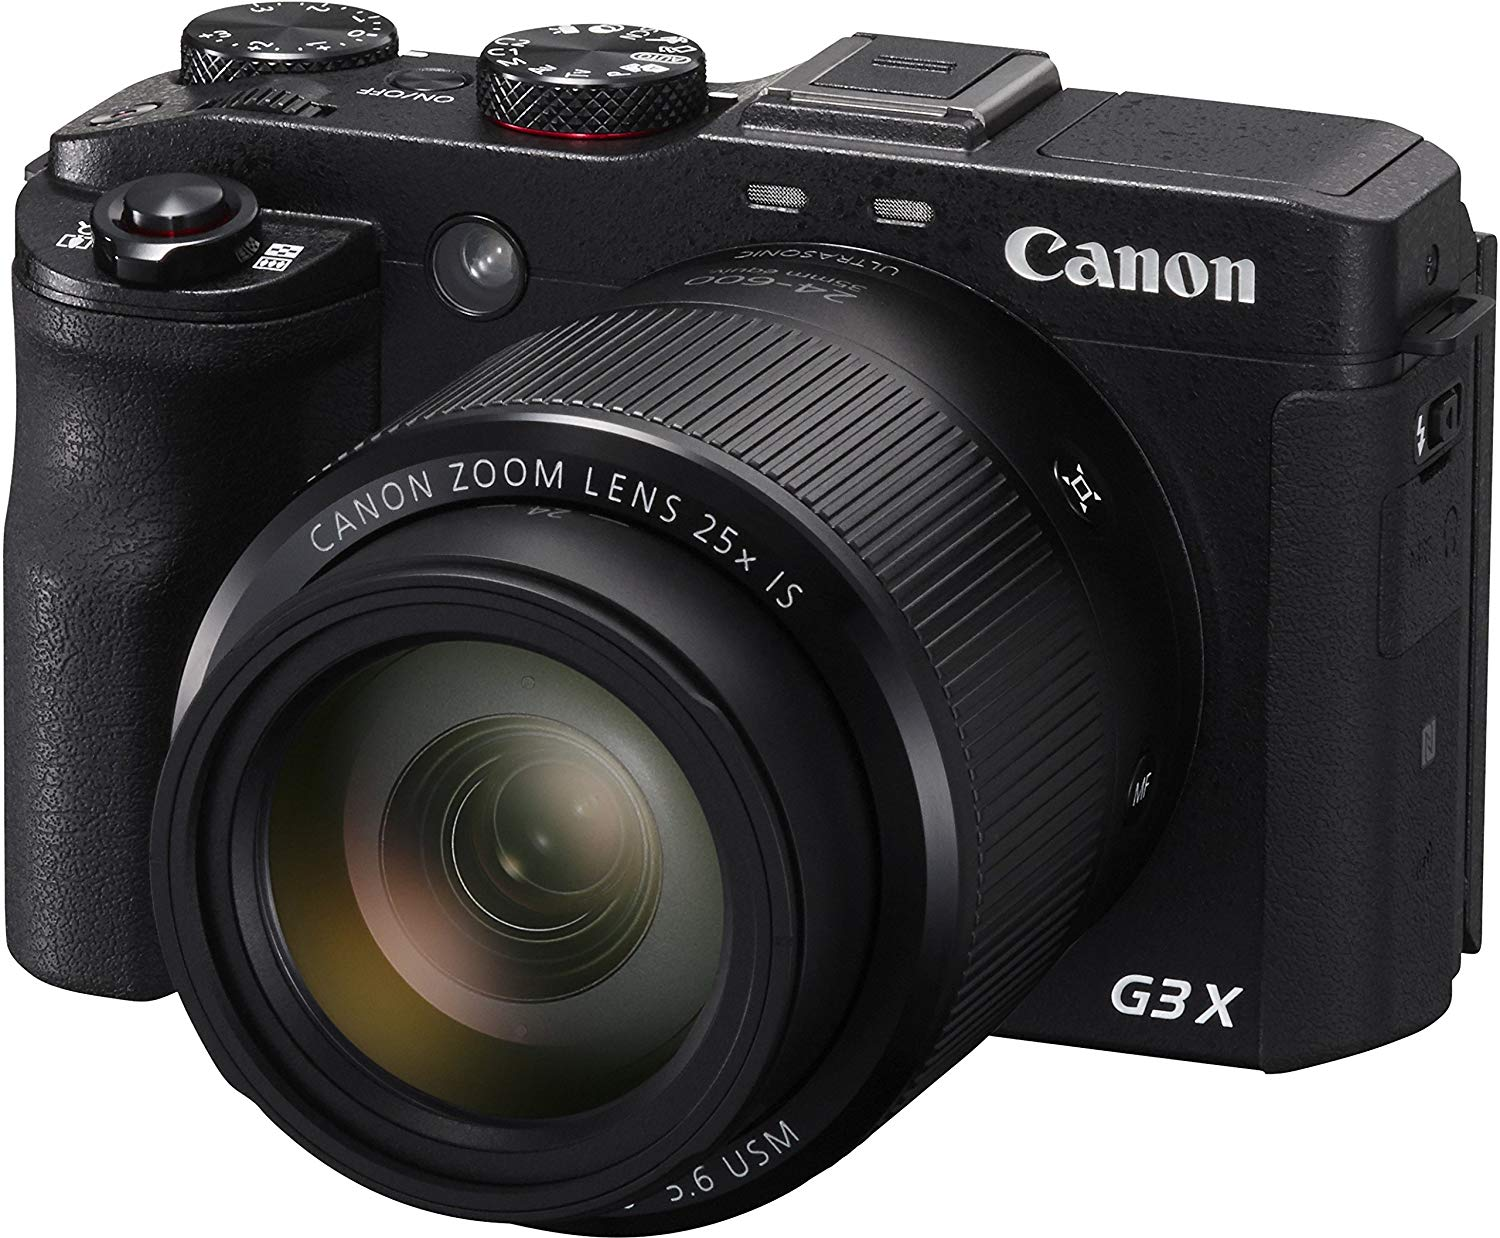 Canon G3 X Compact Digital Camera